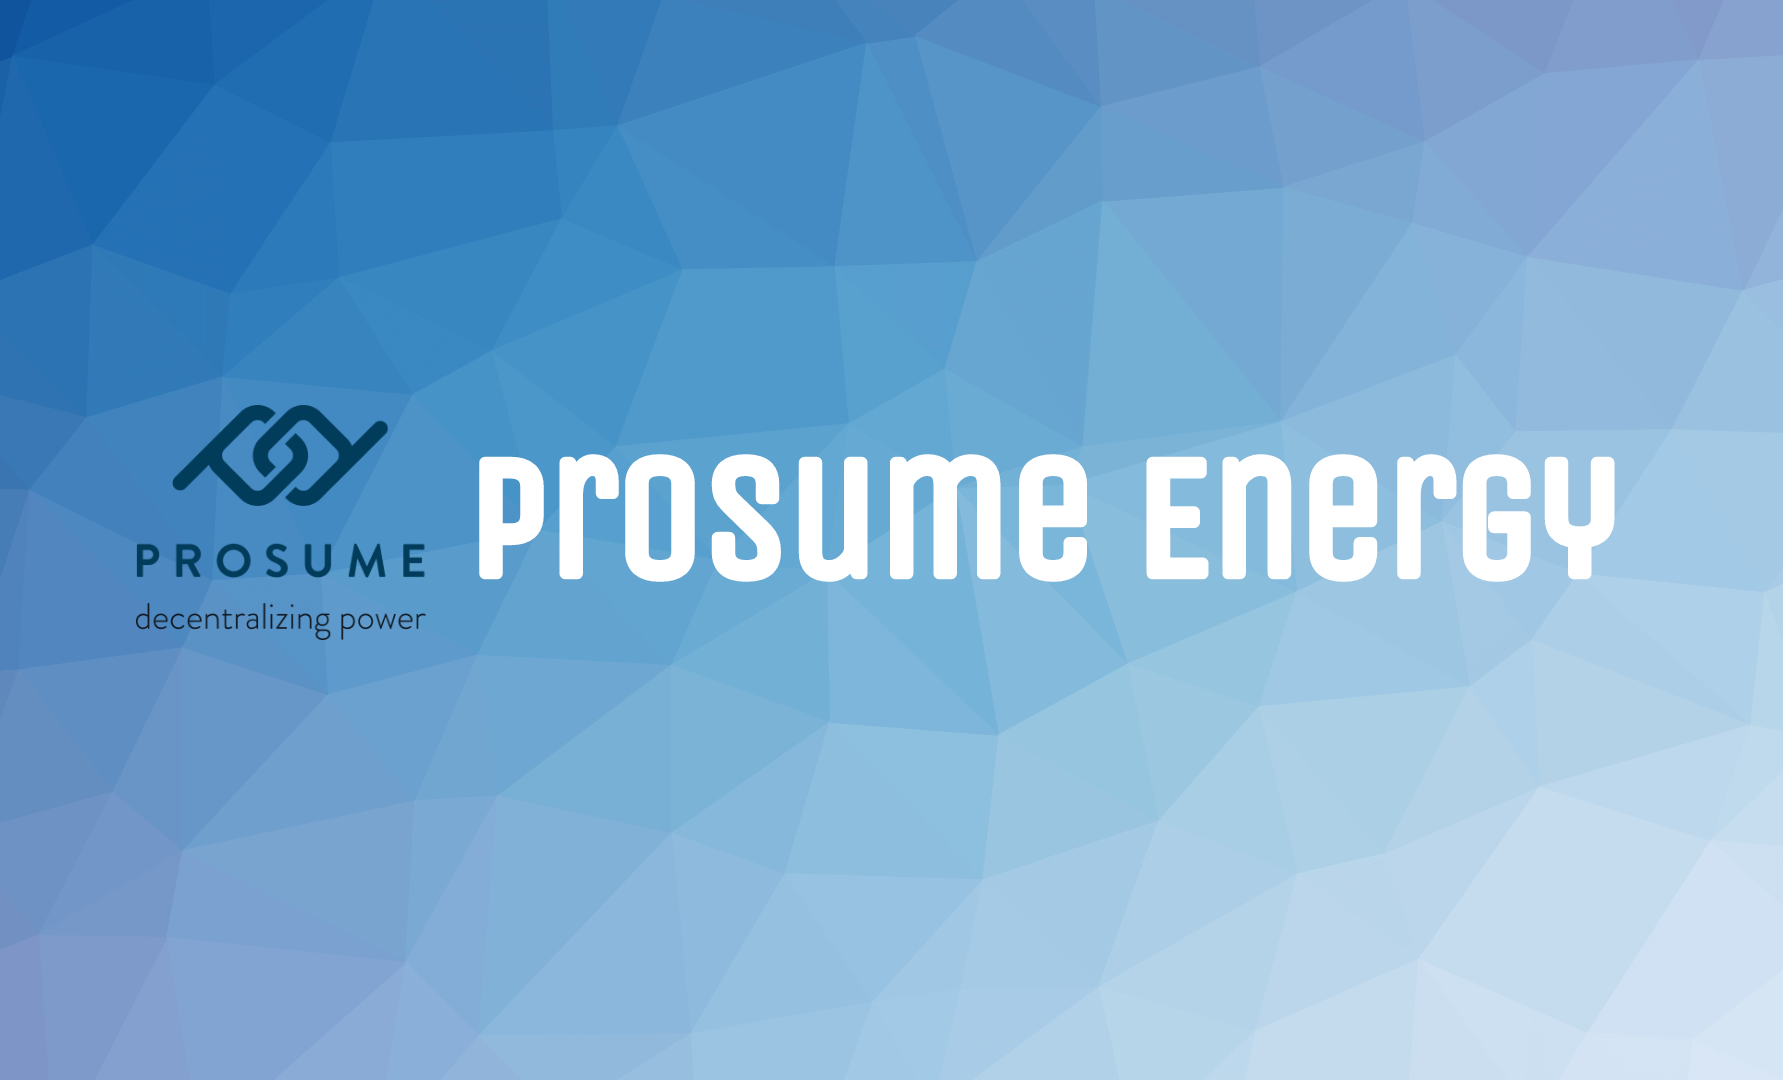 Background-Prosume Energy